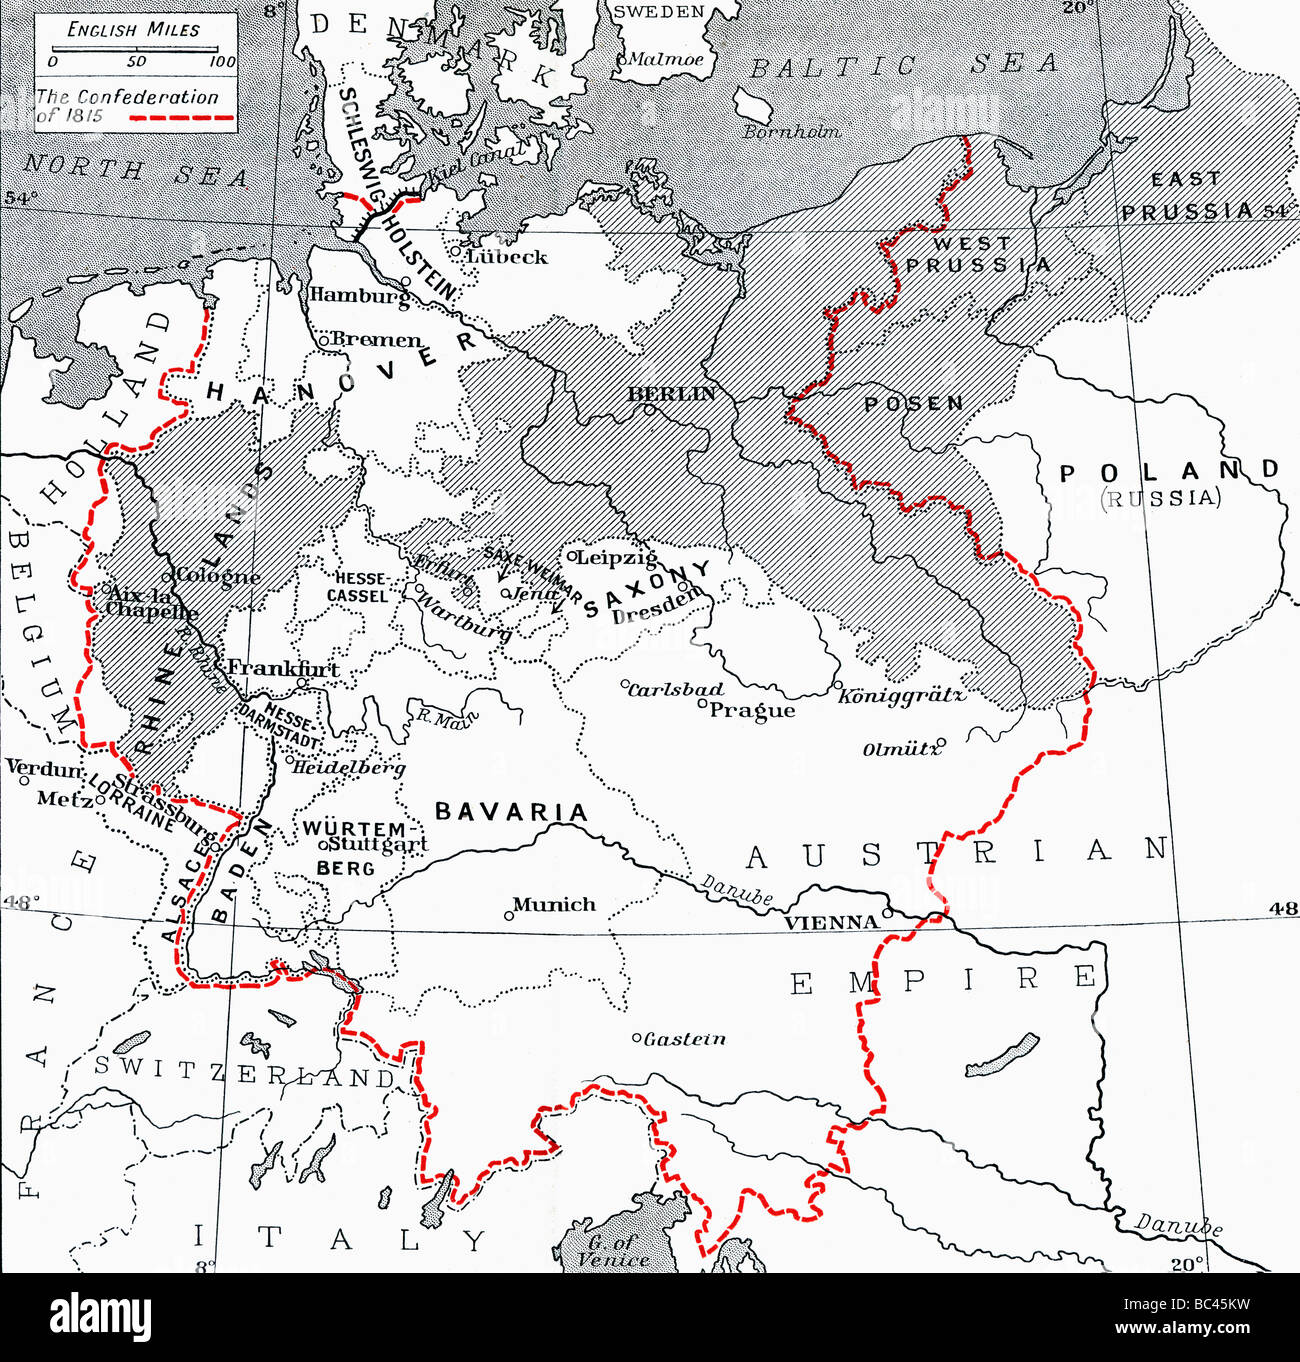 Map Of Germany 1815.Map Of Germany In 1815 From The Book Europe In The Nineteenth Stock